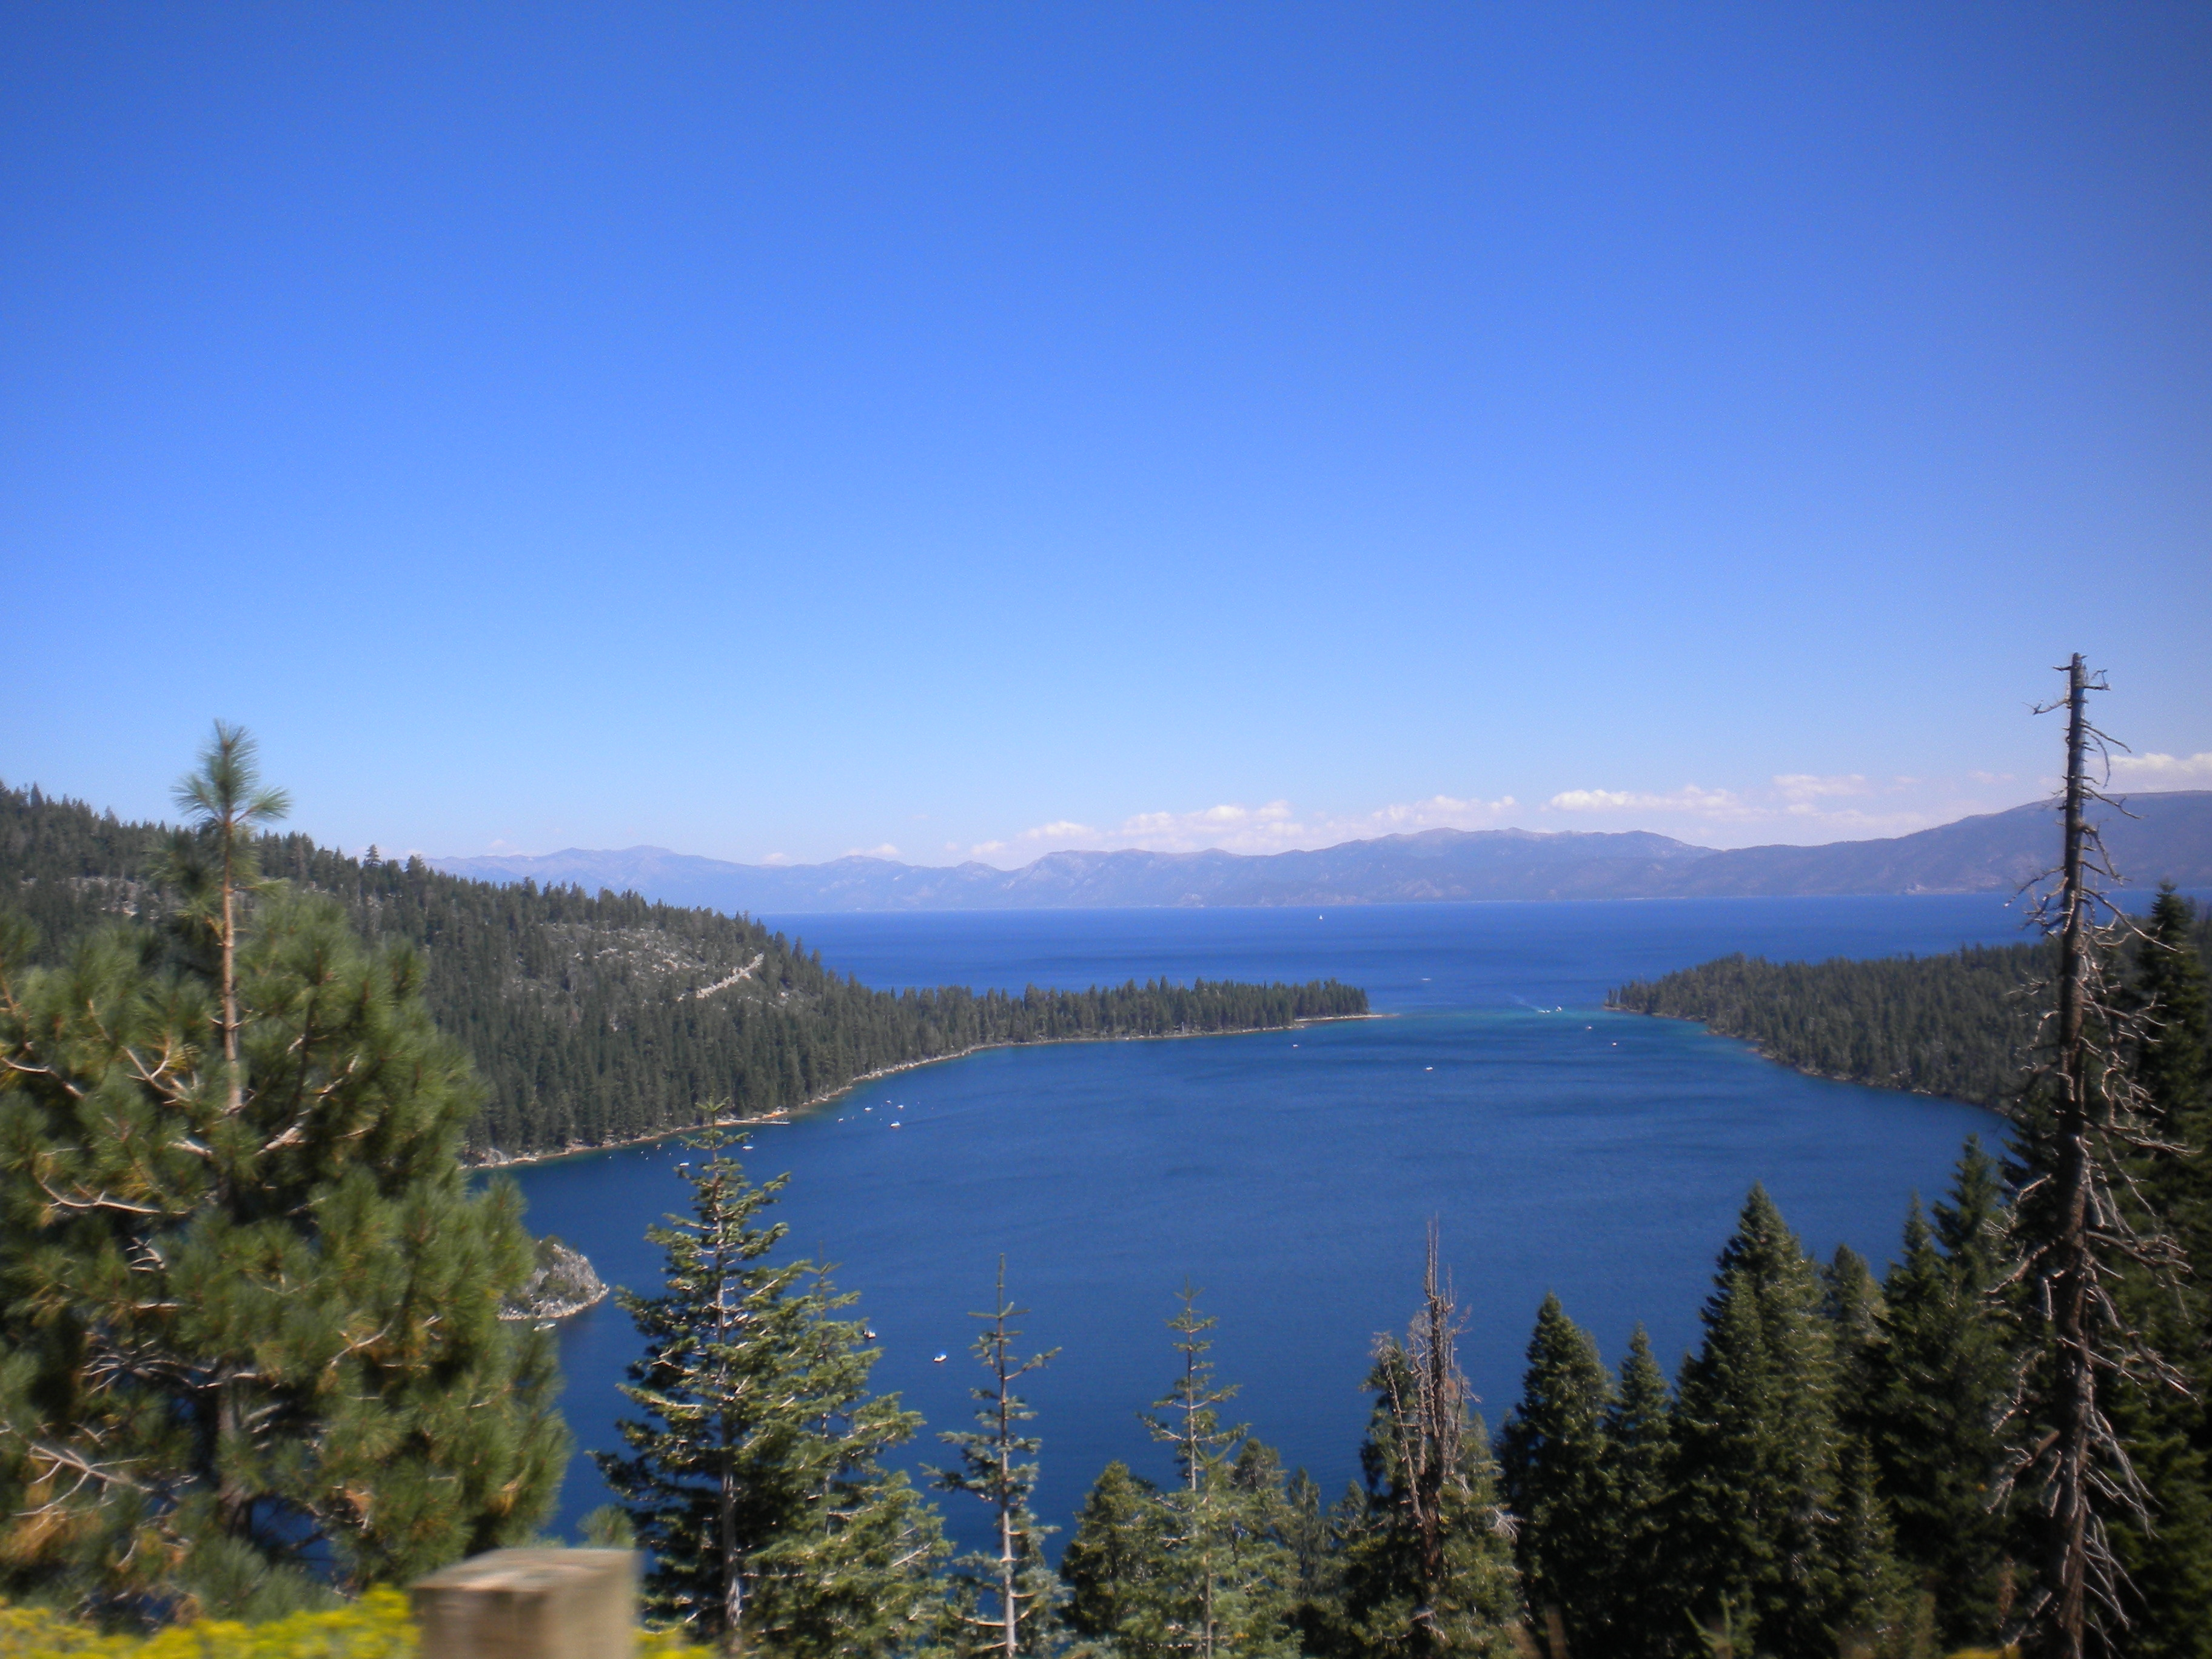 Emerald Bay en el Lago Tahoe. California